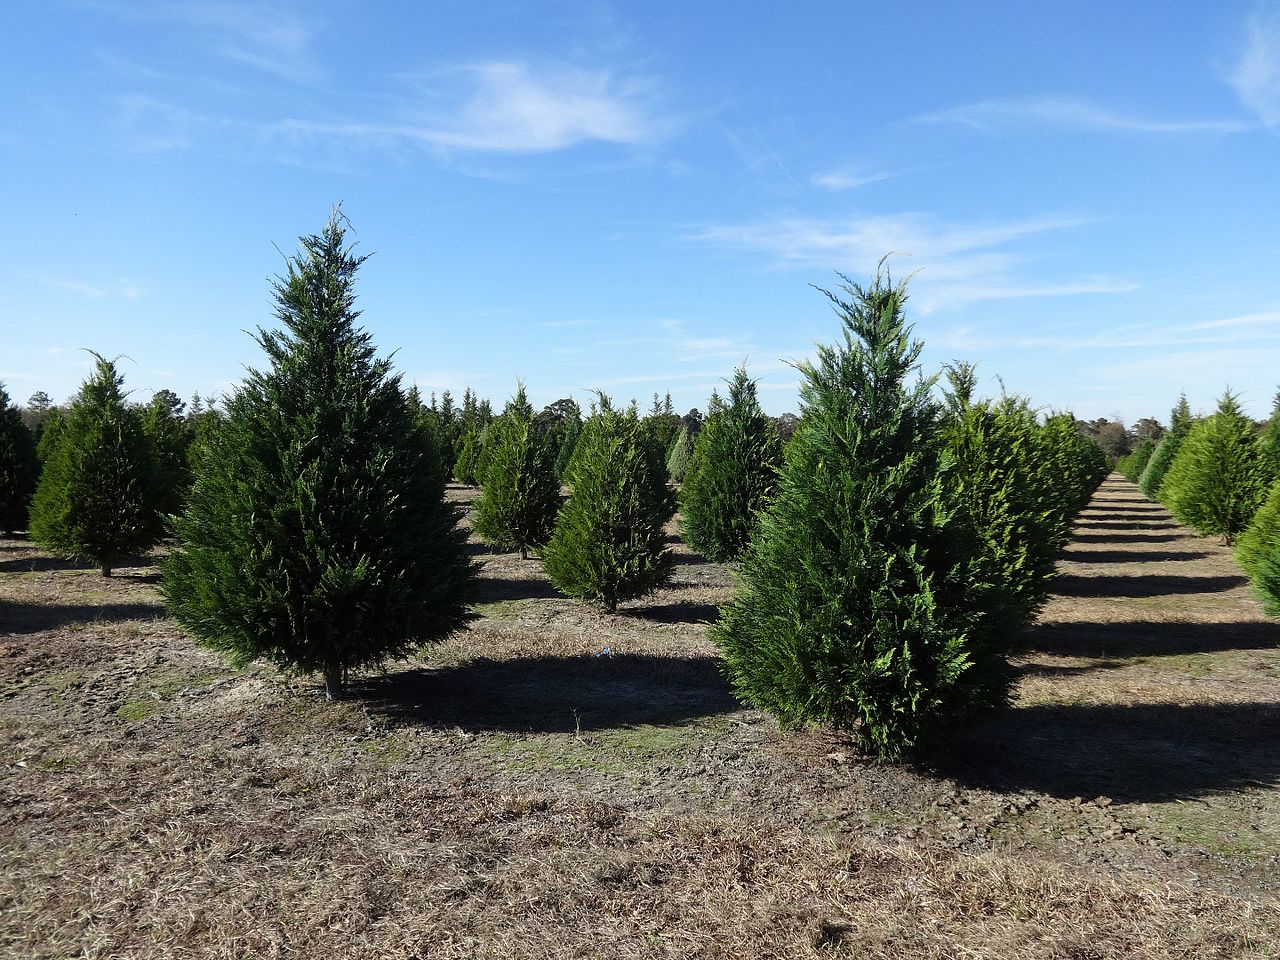 File:Hambrick's Christmas Tree Farm, Leyland Cypress